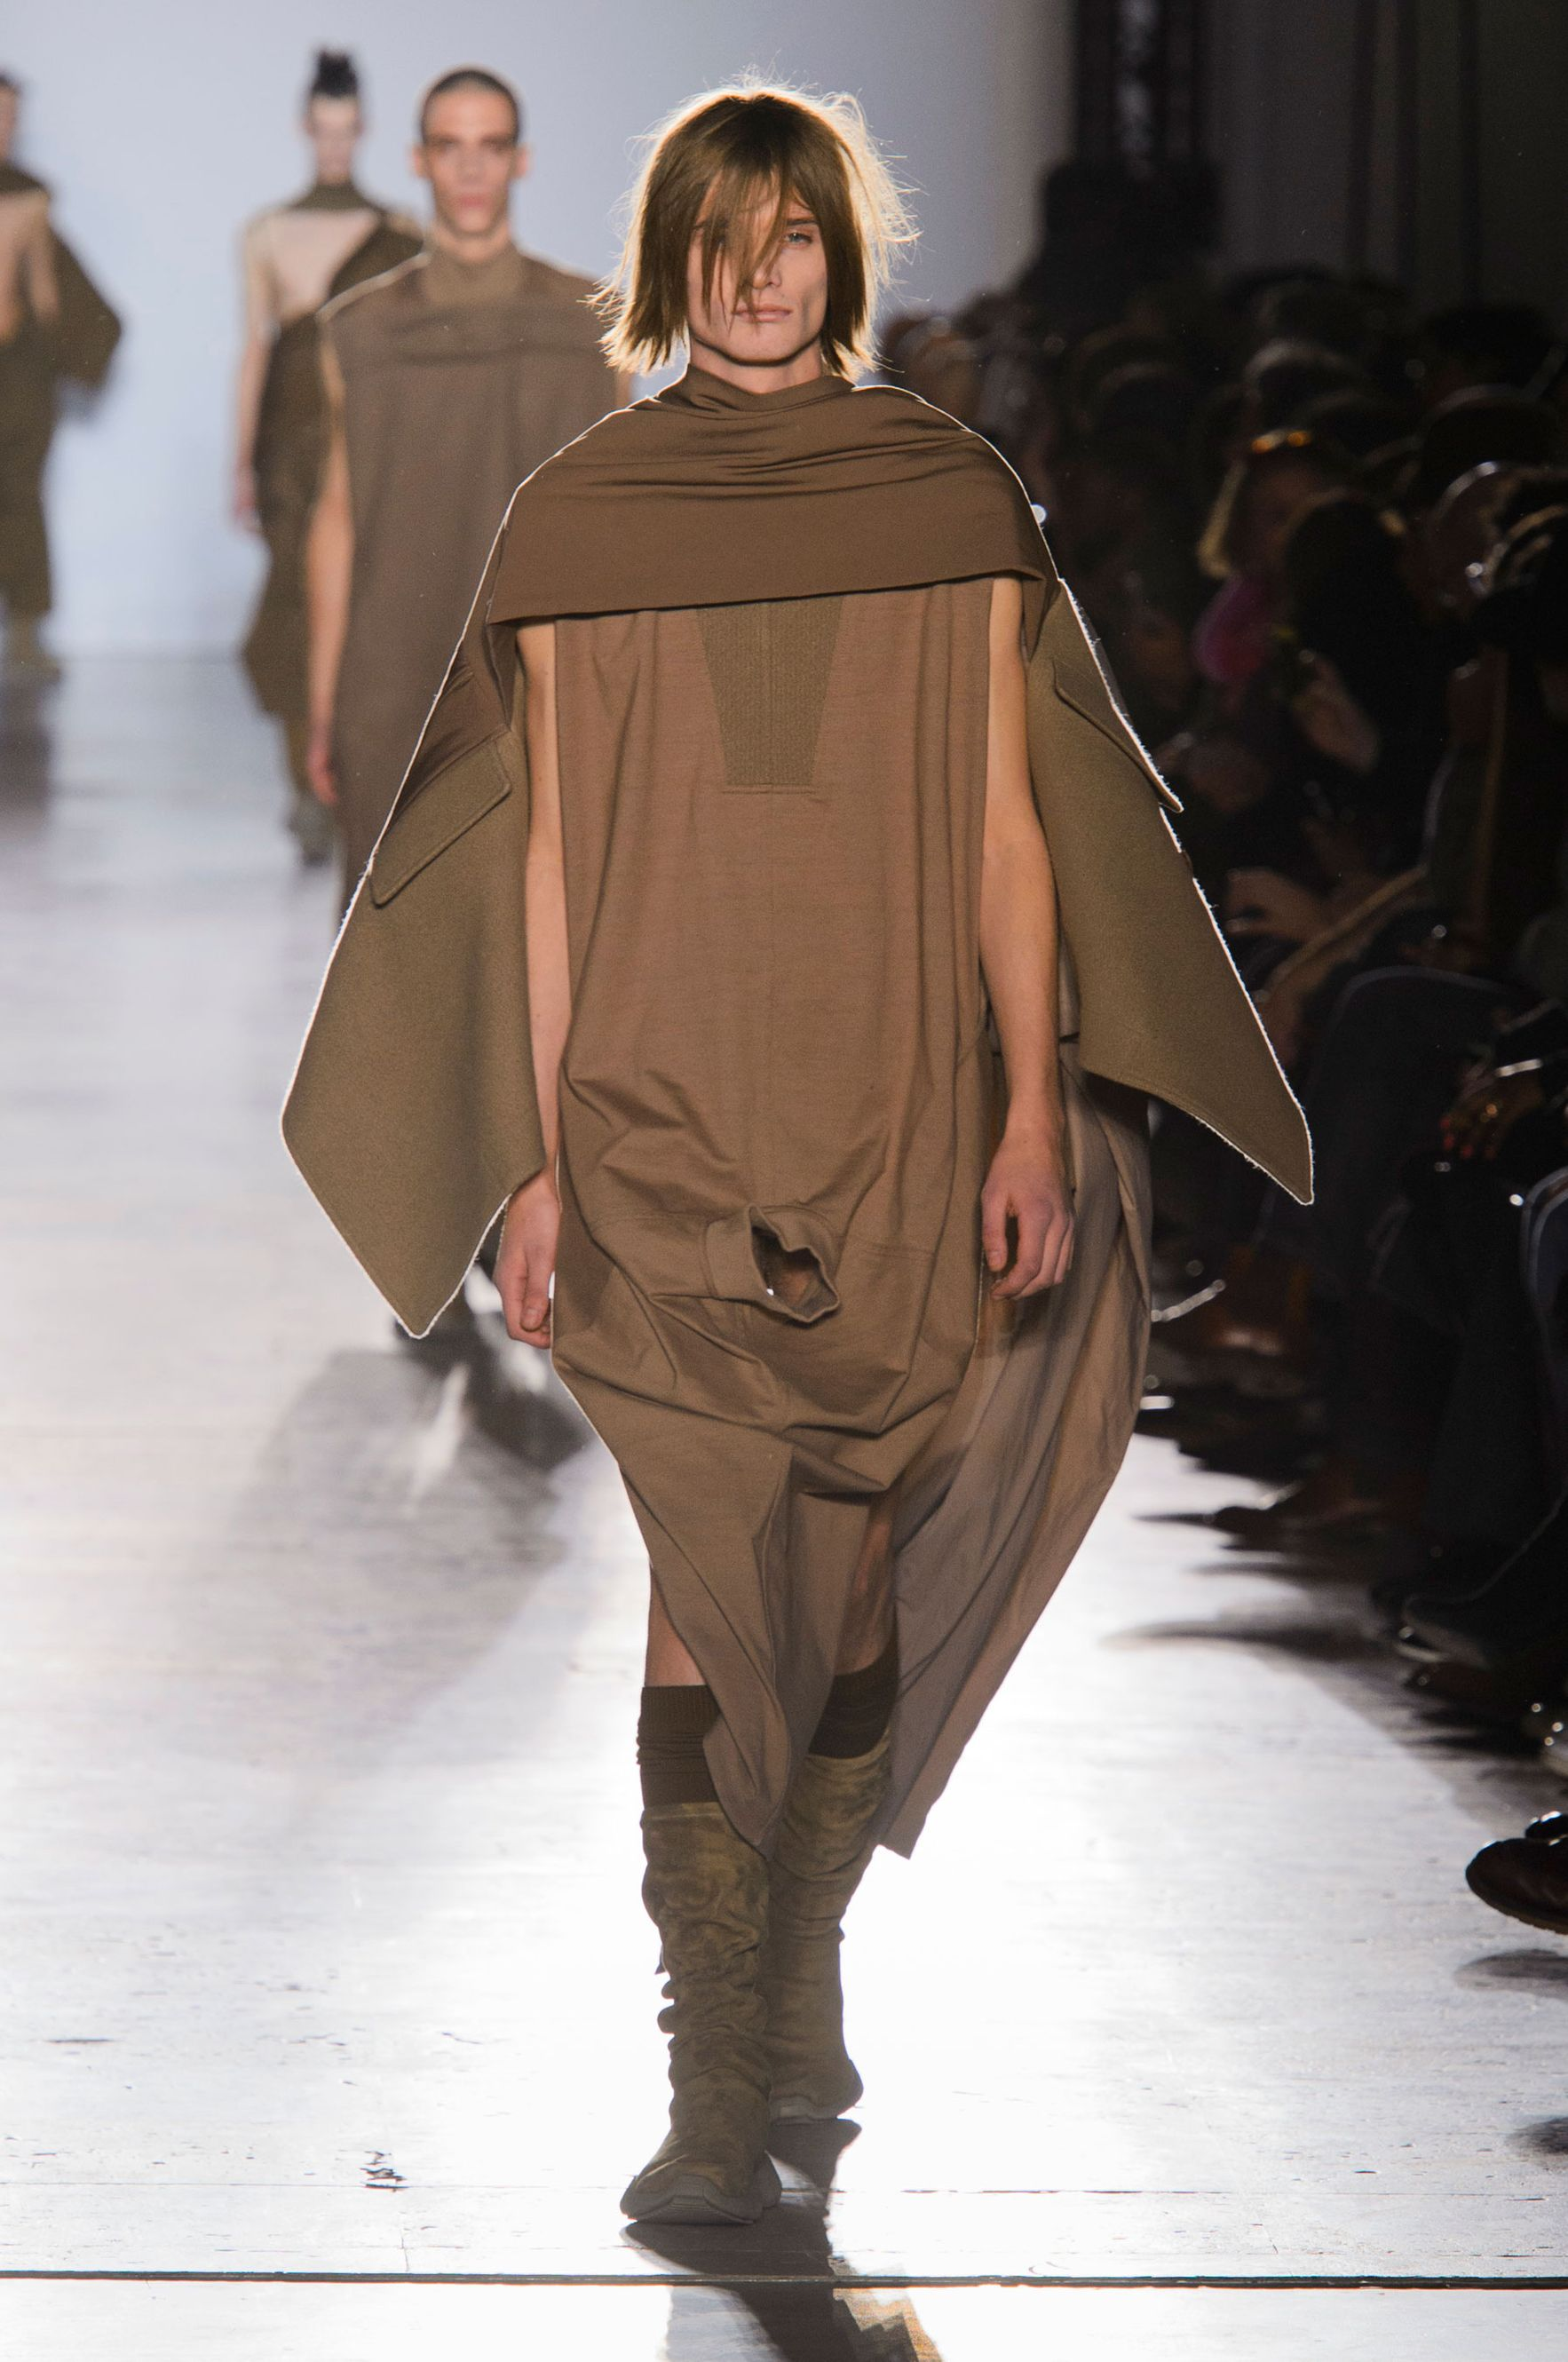 Photo 22 from Rick Owens